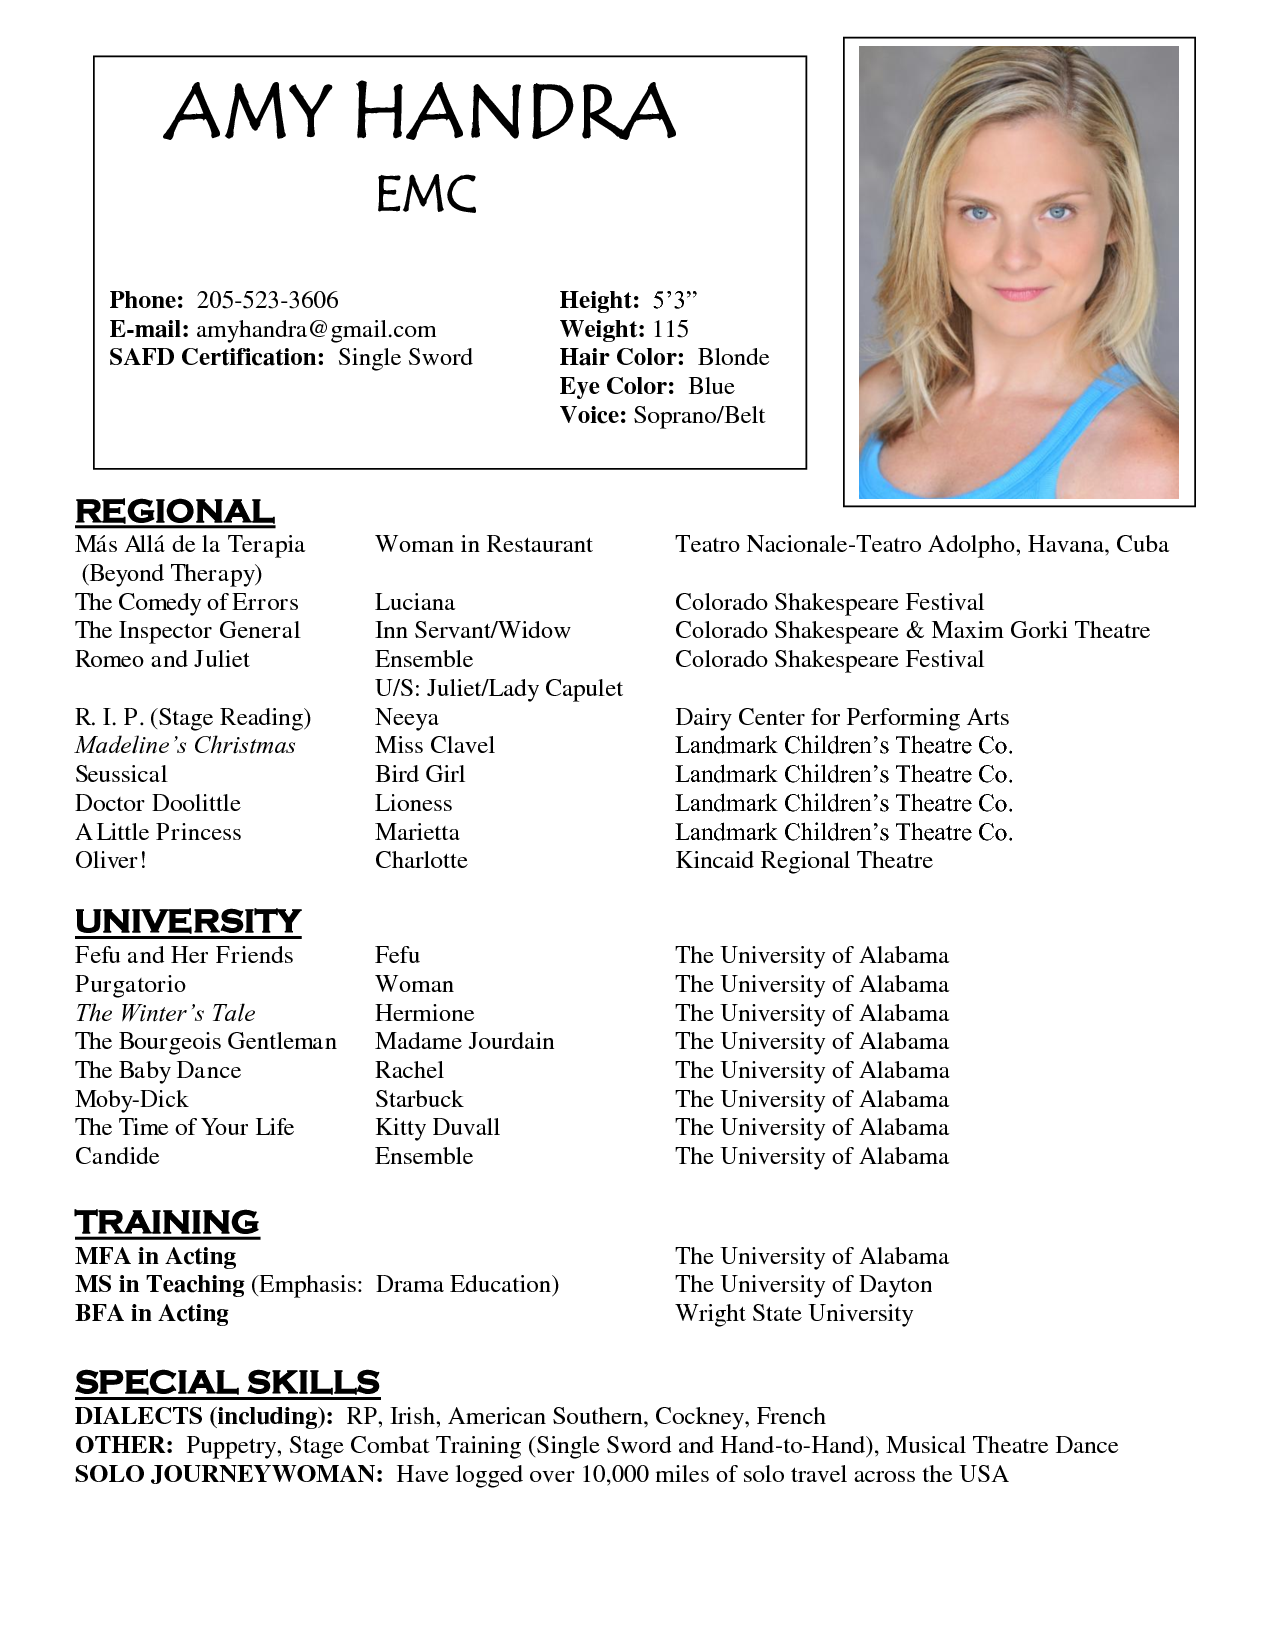 free acting resume templates